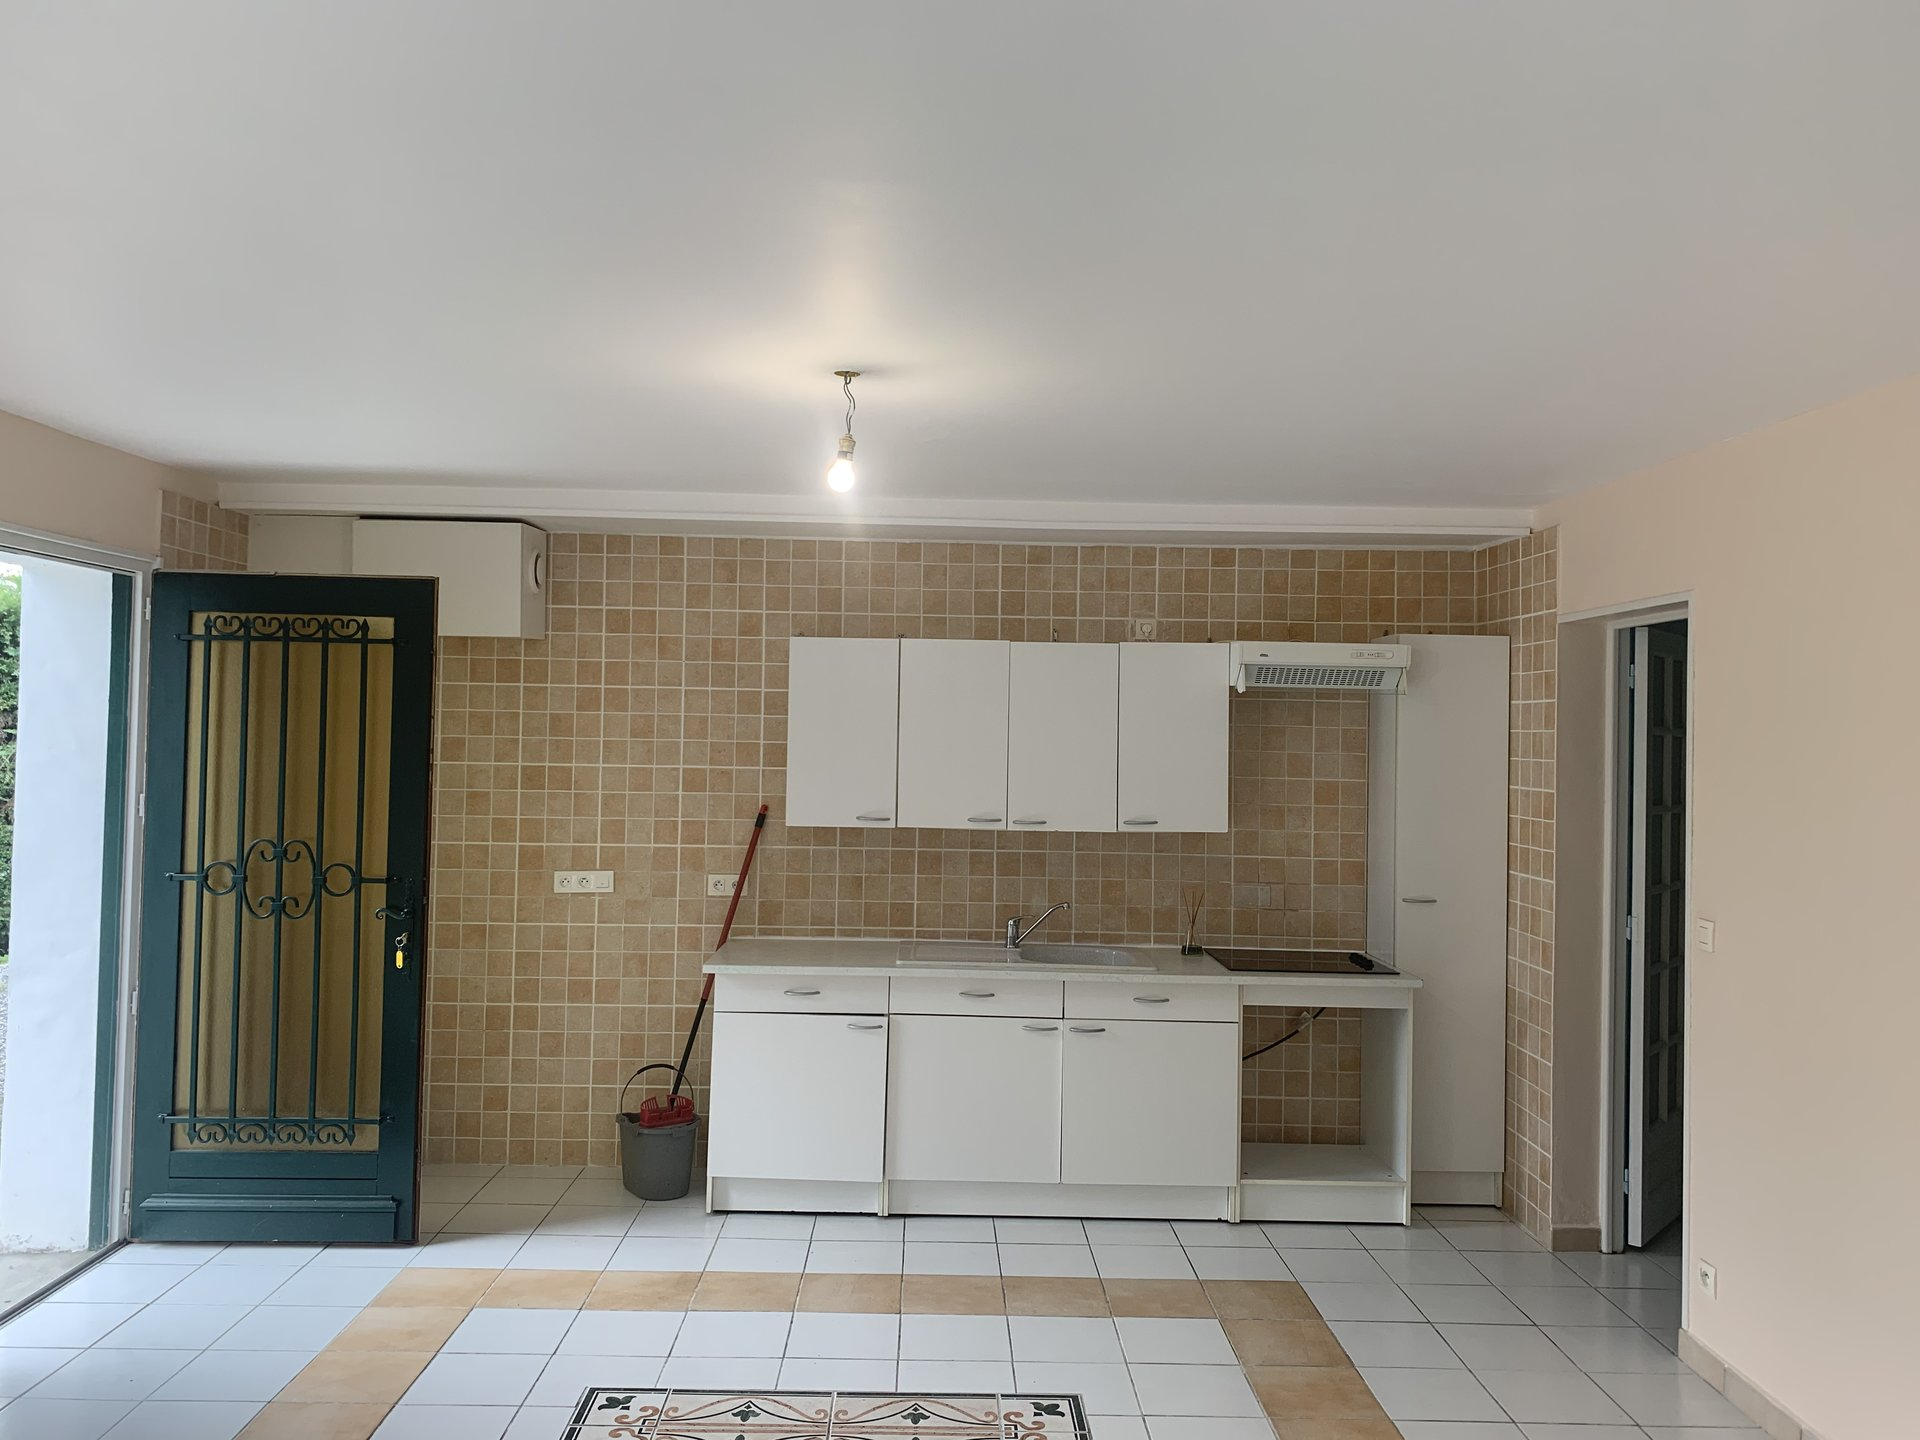 Sale Apartment - Saint-Pée-sur-Nivelle